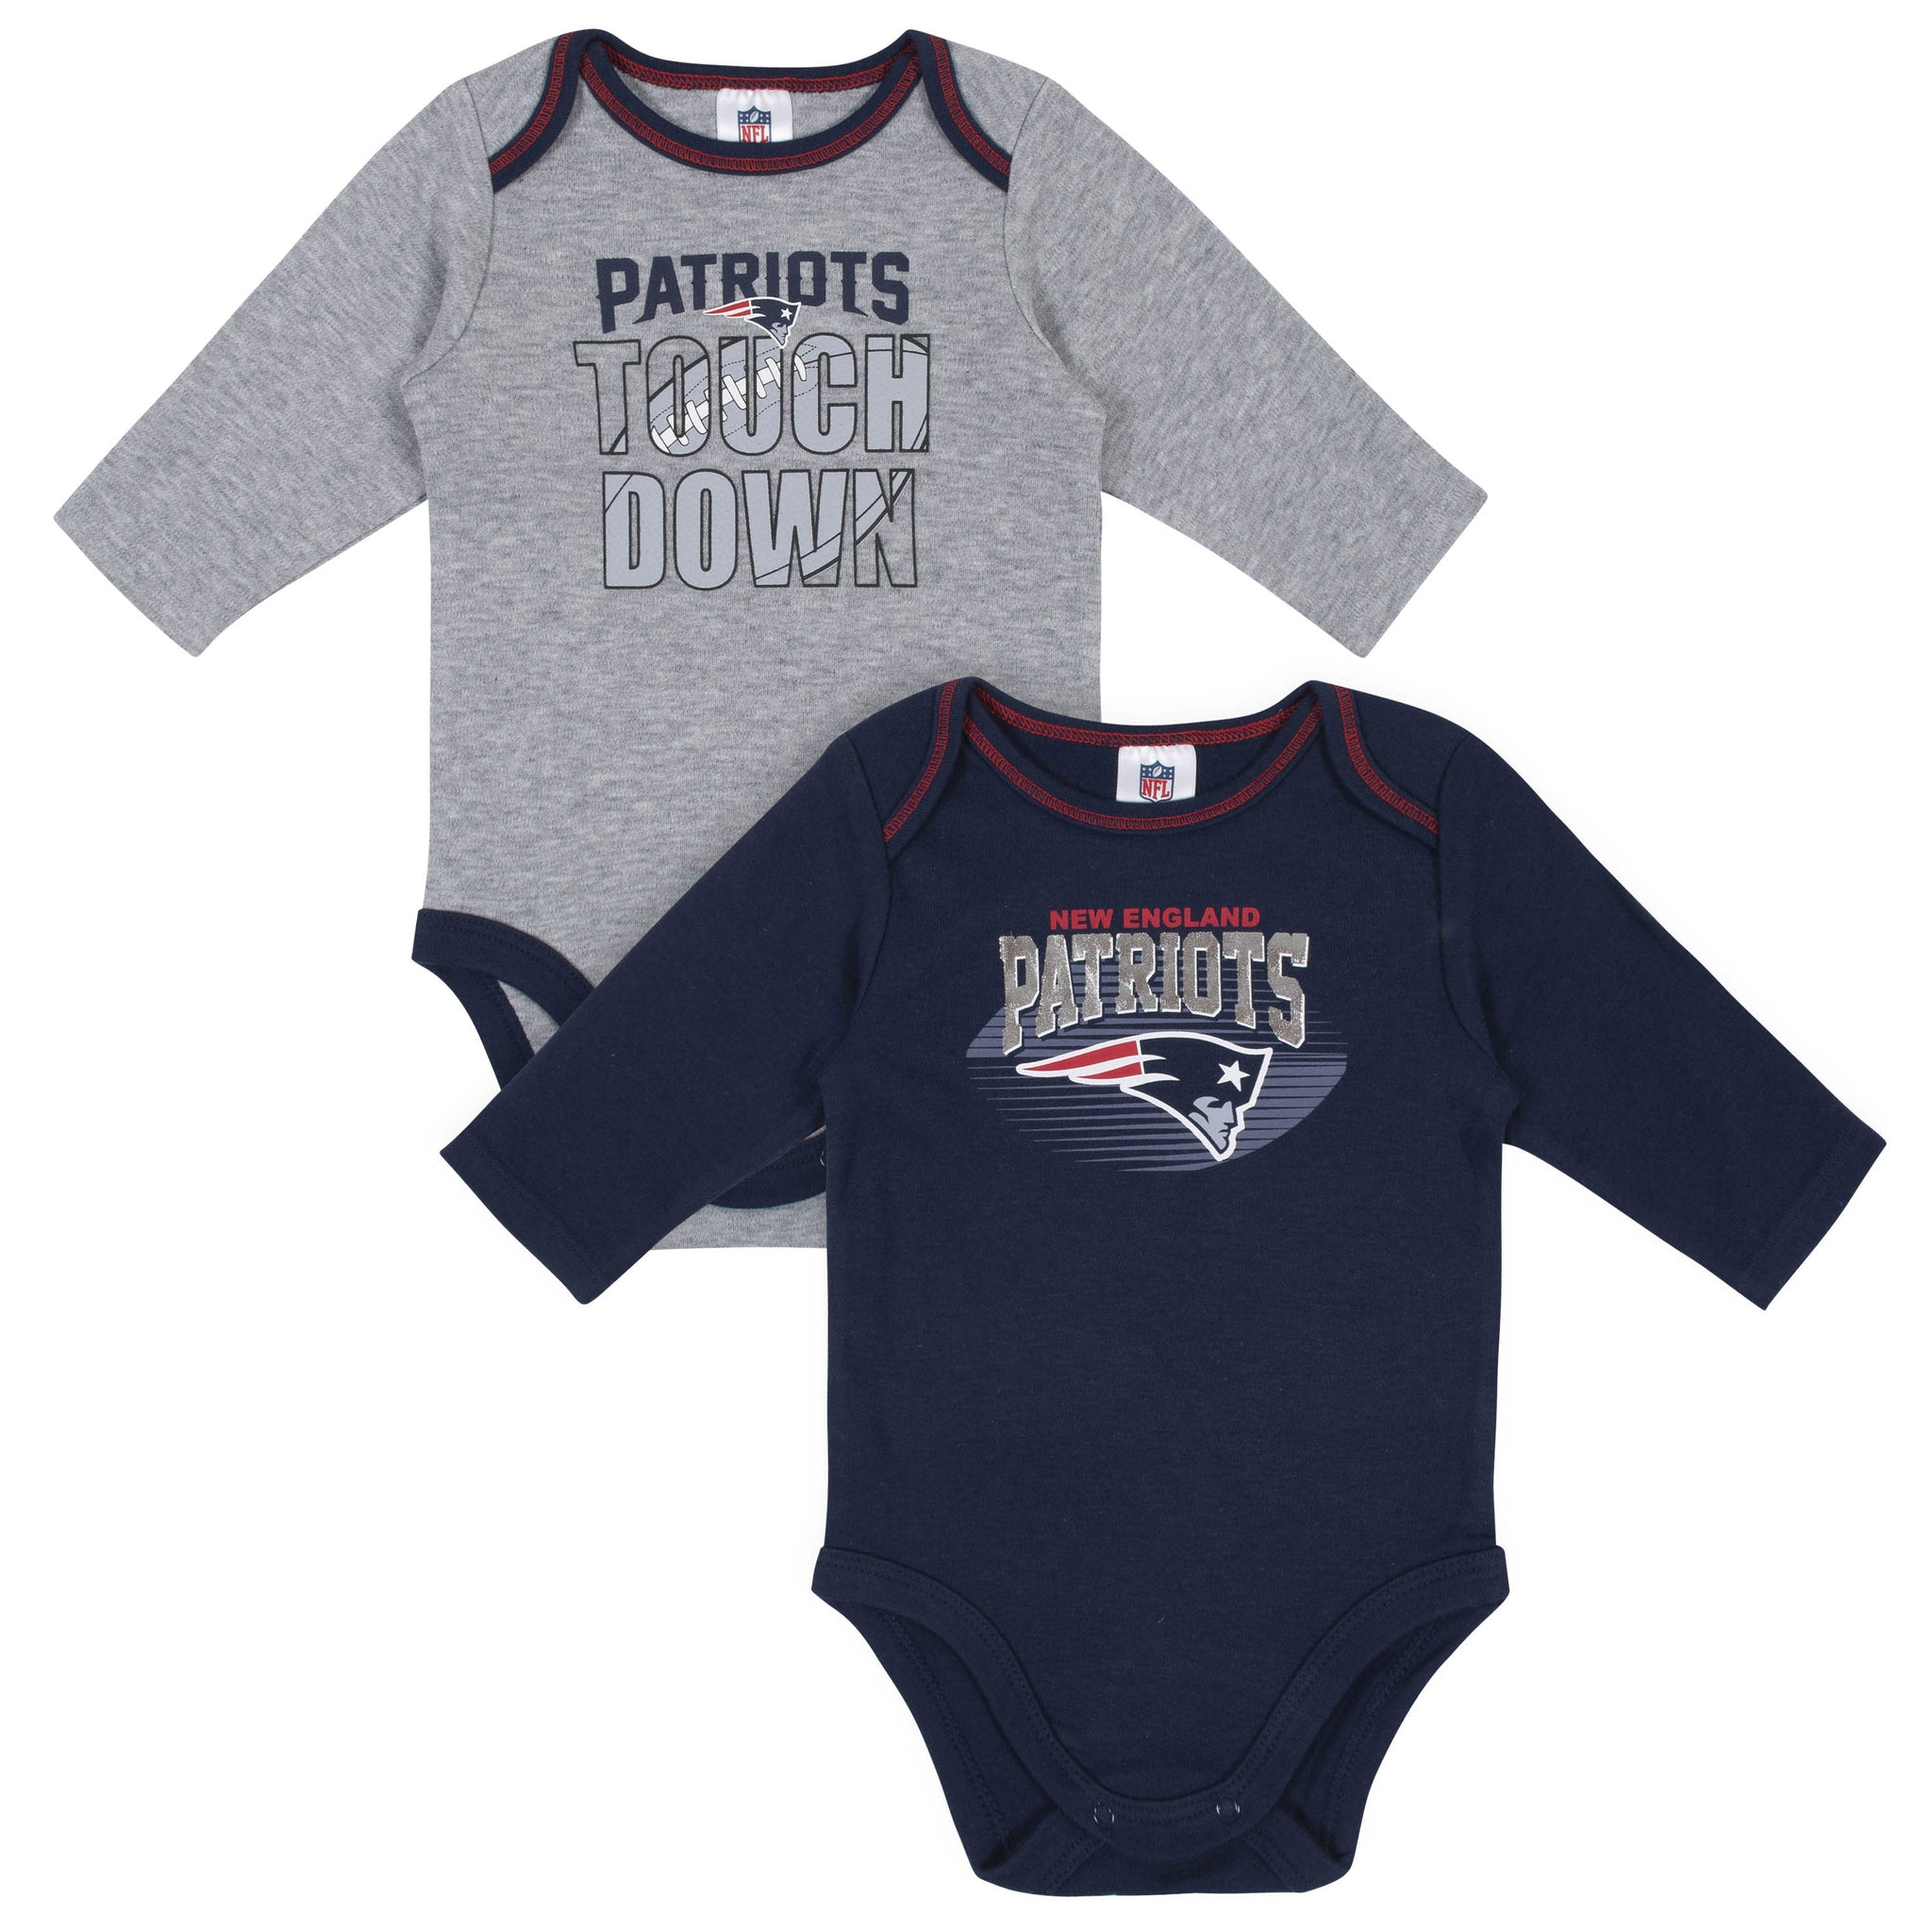 finest selection 67434 b7edd New England Patriots Baby Clothing | Gerber Childrenswear